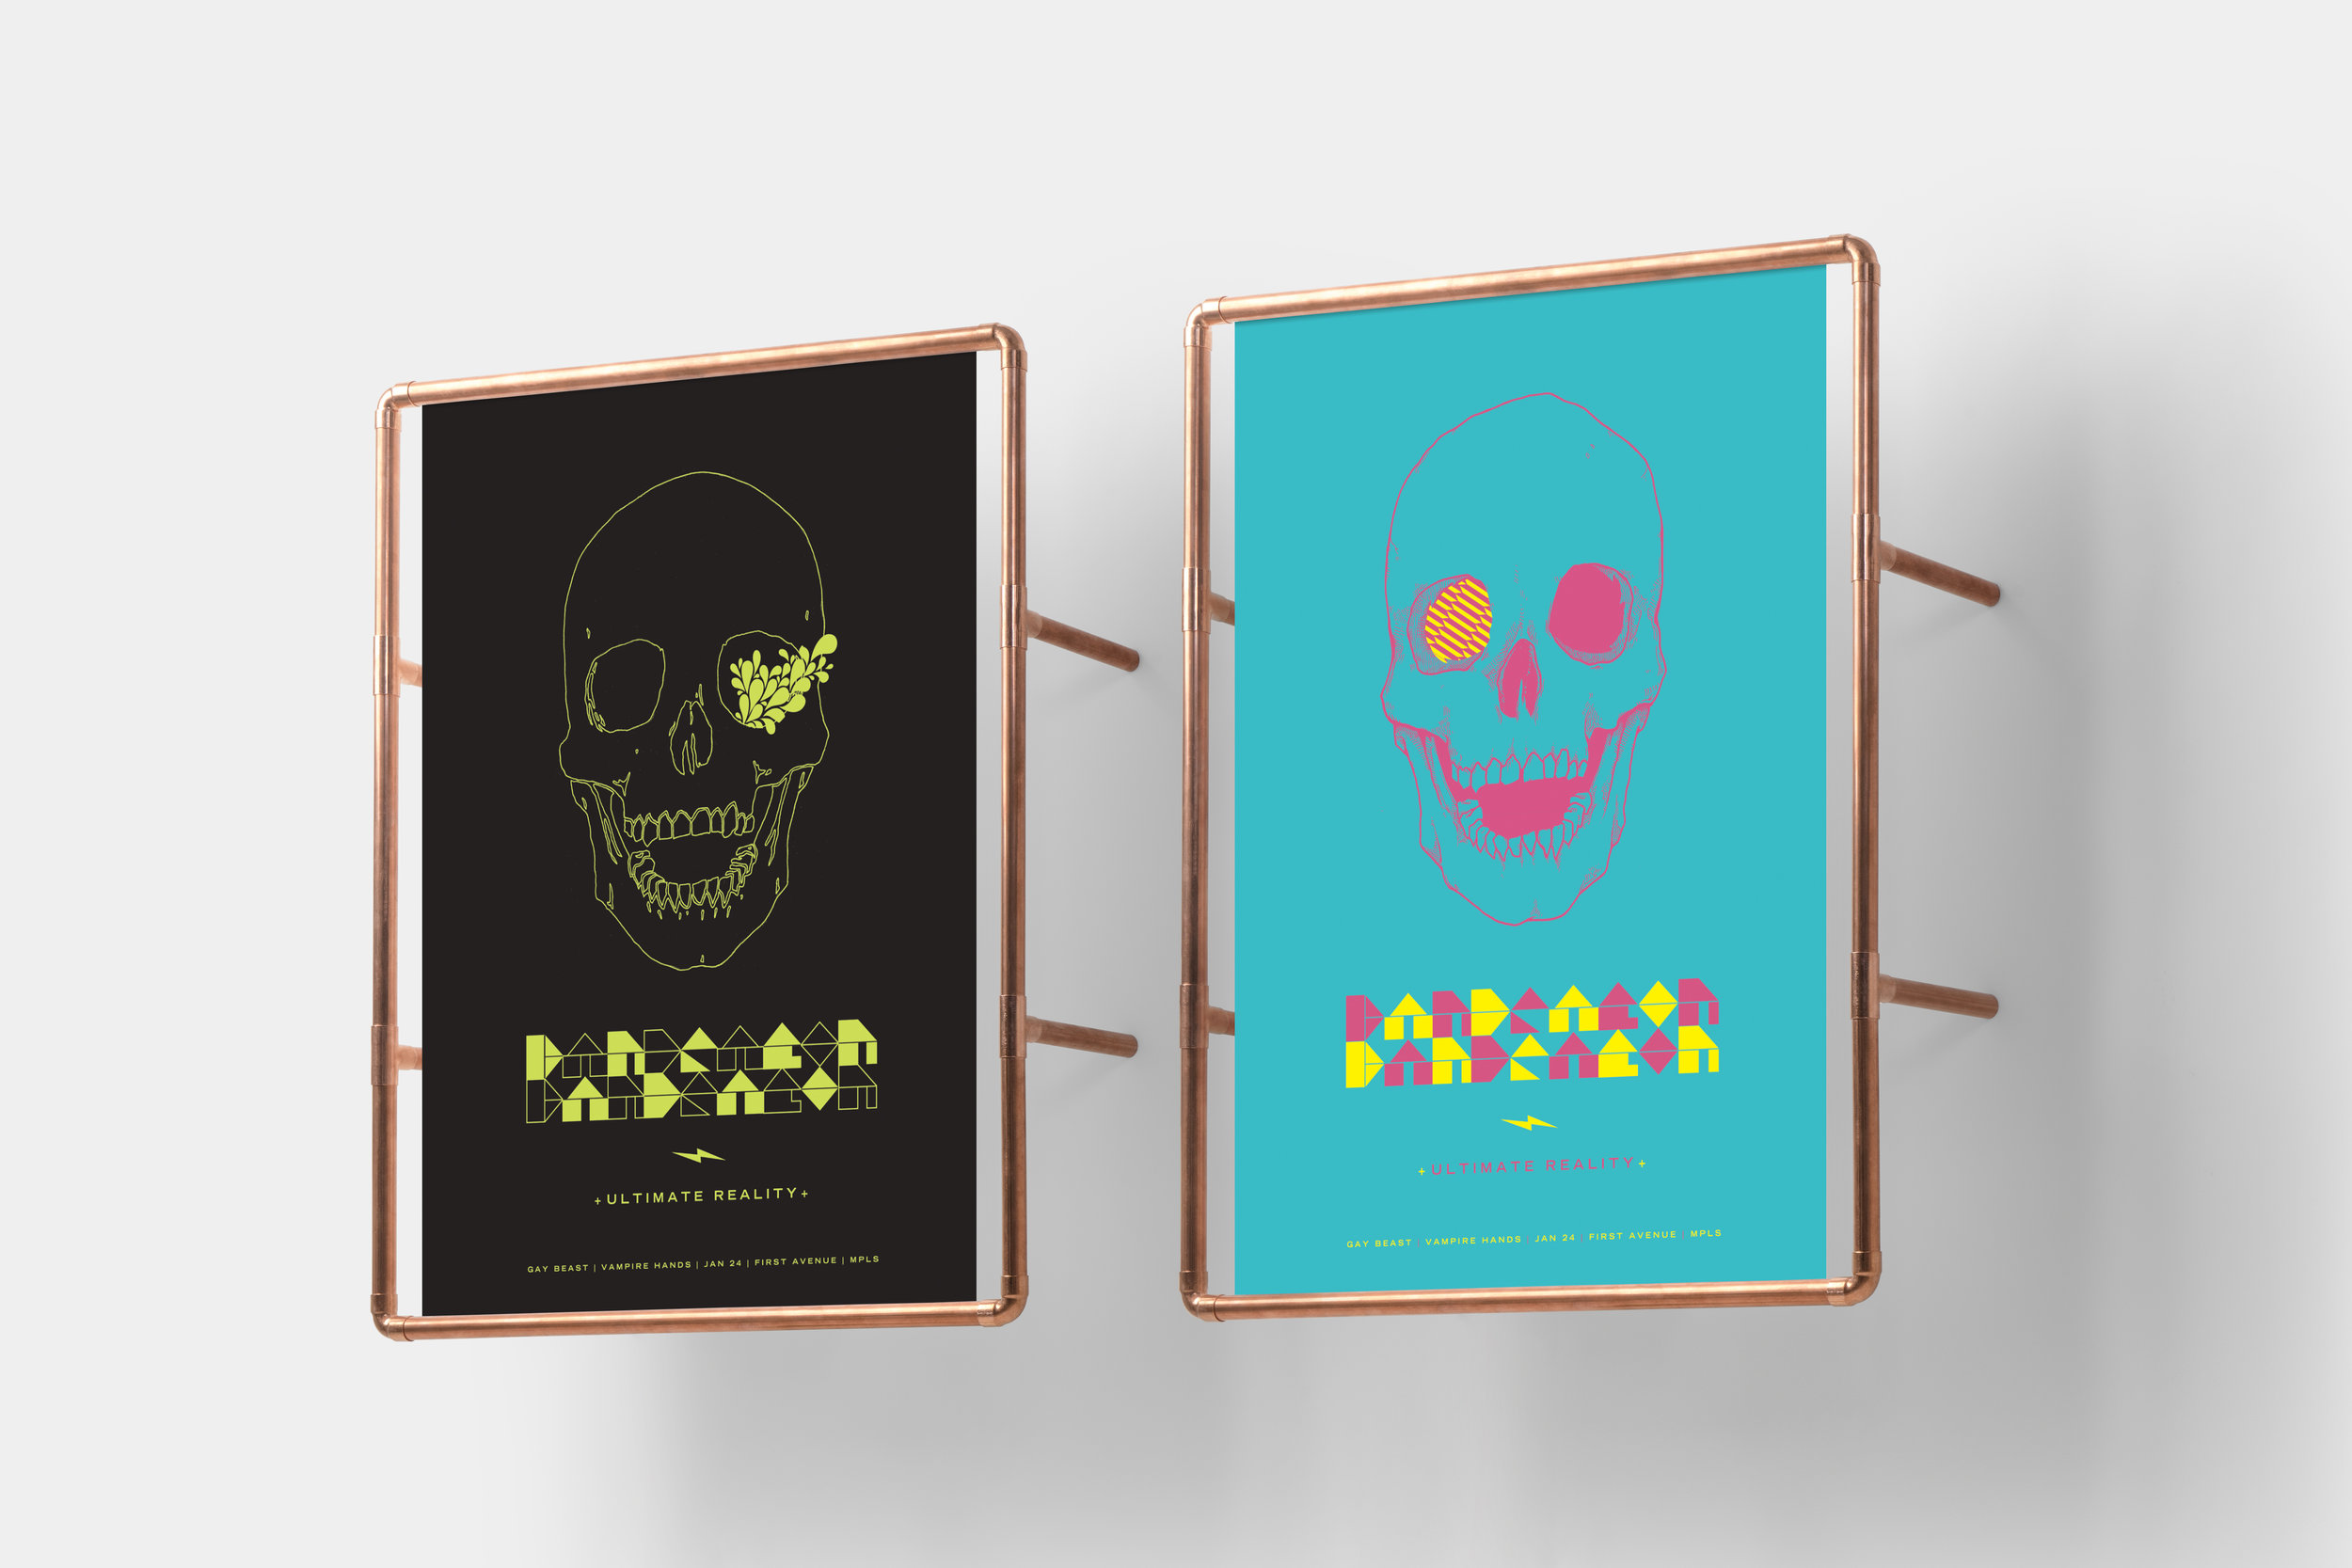 Dan Deacon glow-in-the-dark poster  Created with Flora Fauna